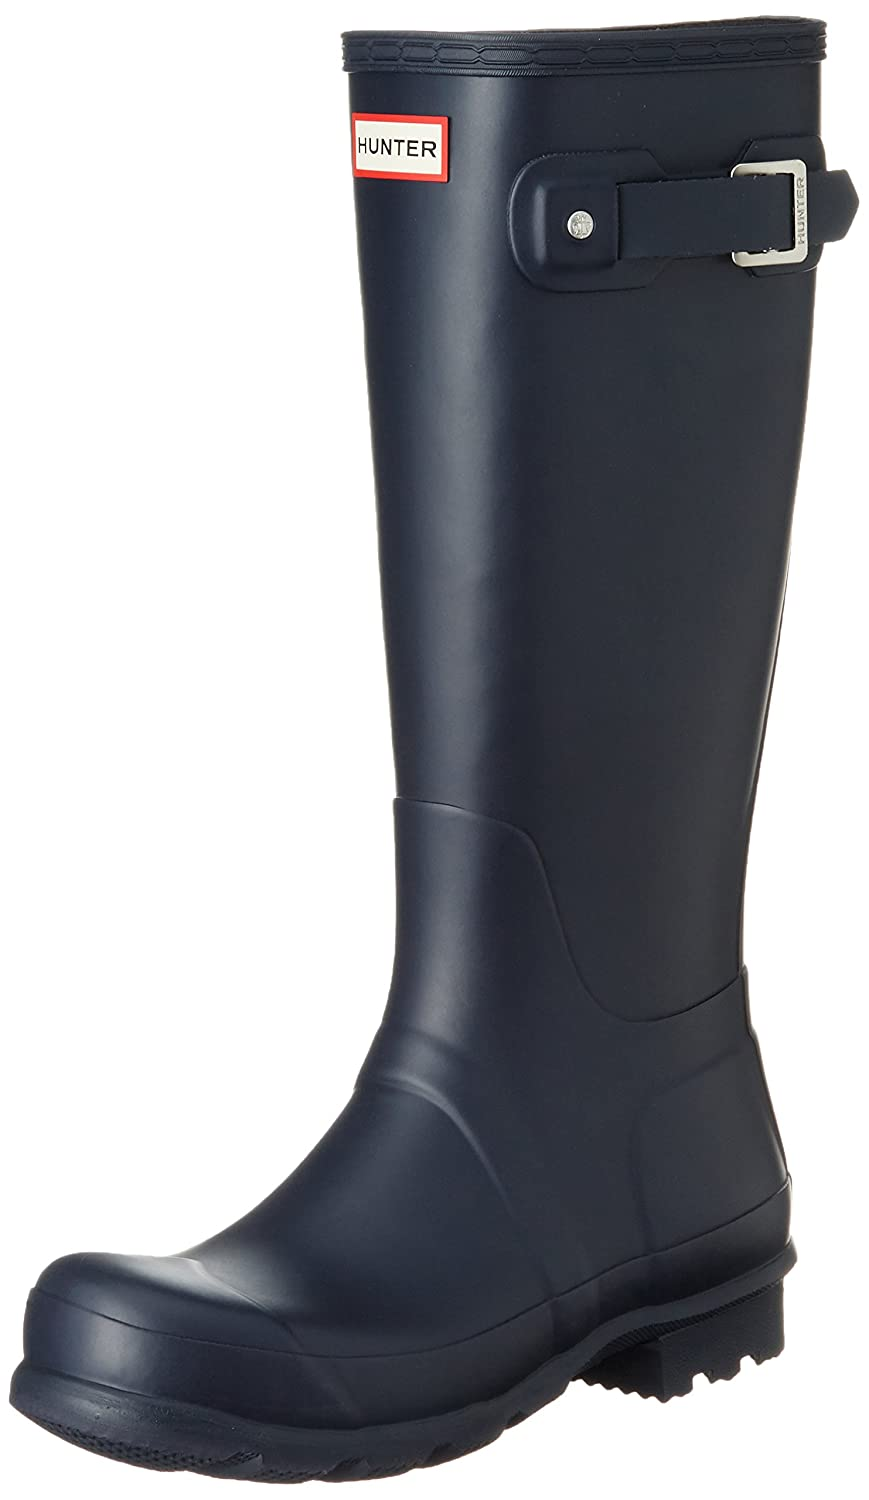 Hunter Rubber Men's Original Tall Knee-High Rubber Hunter Rain Boot B00JLED1O8 7 D(M) US|Navy 66c594